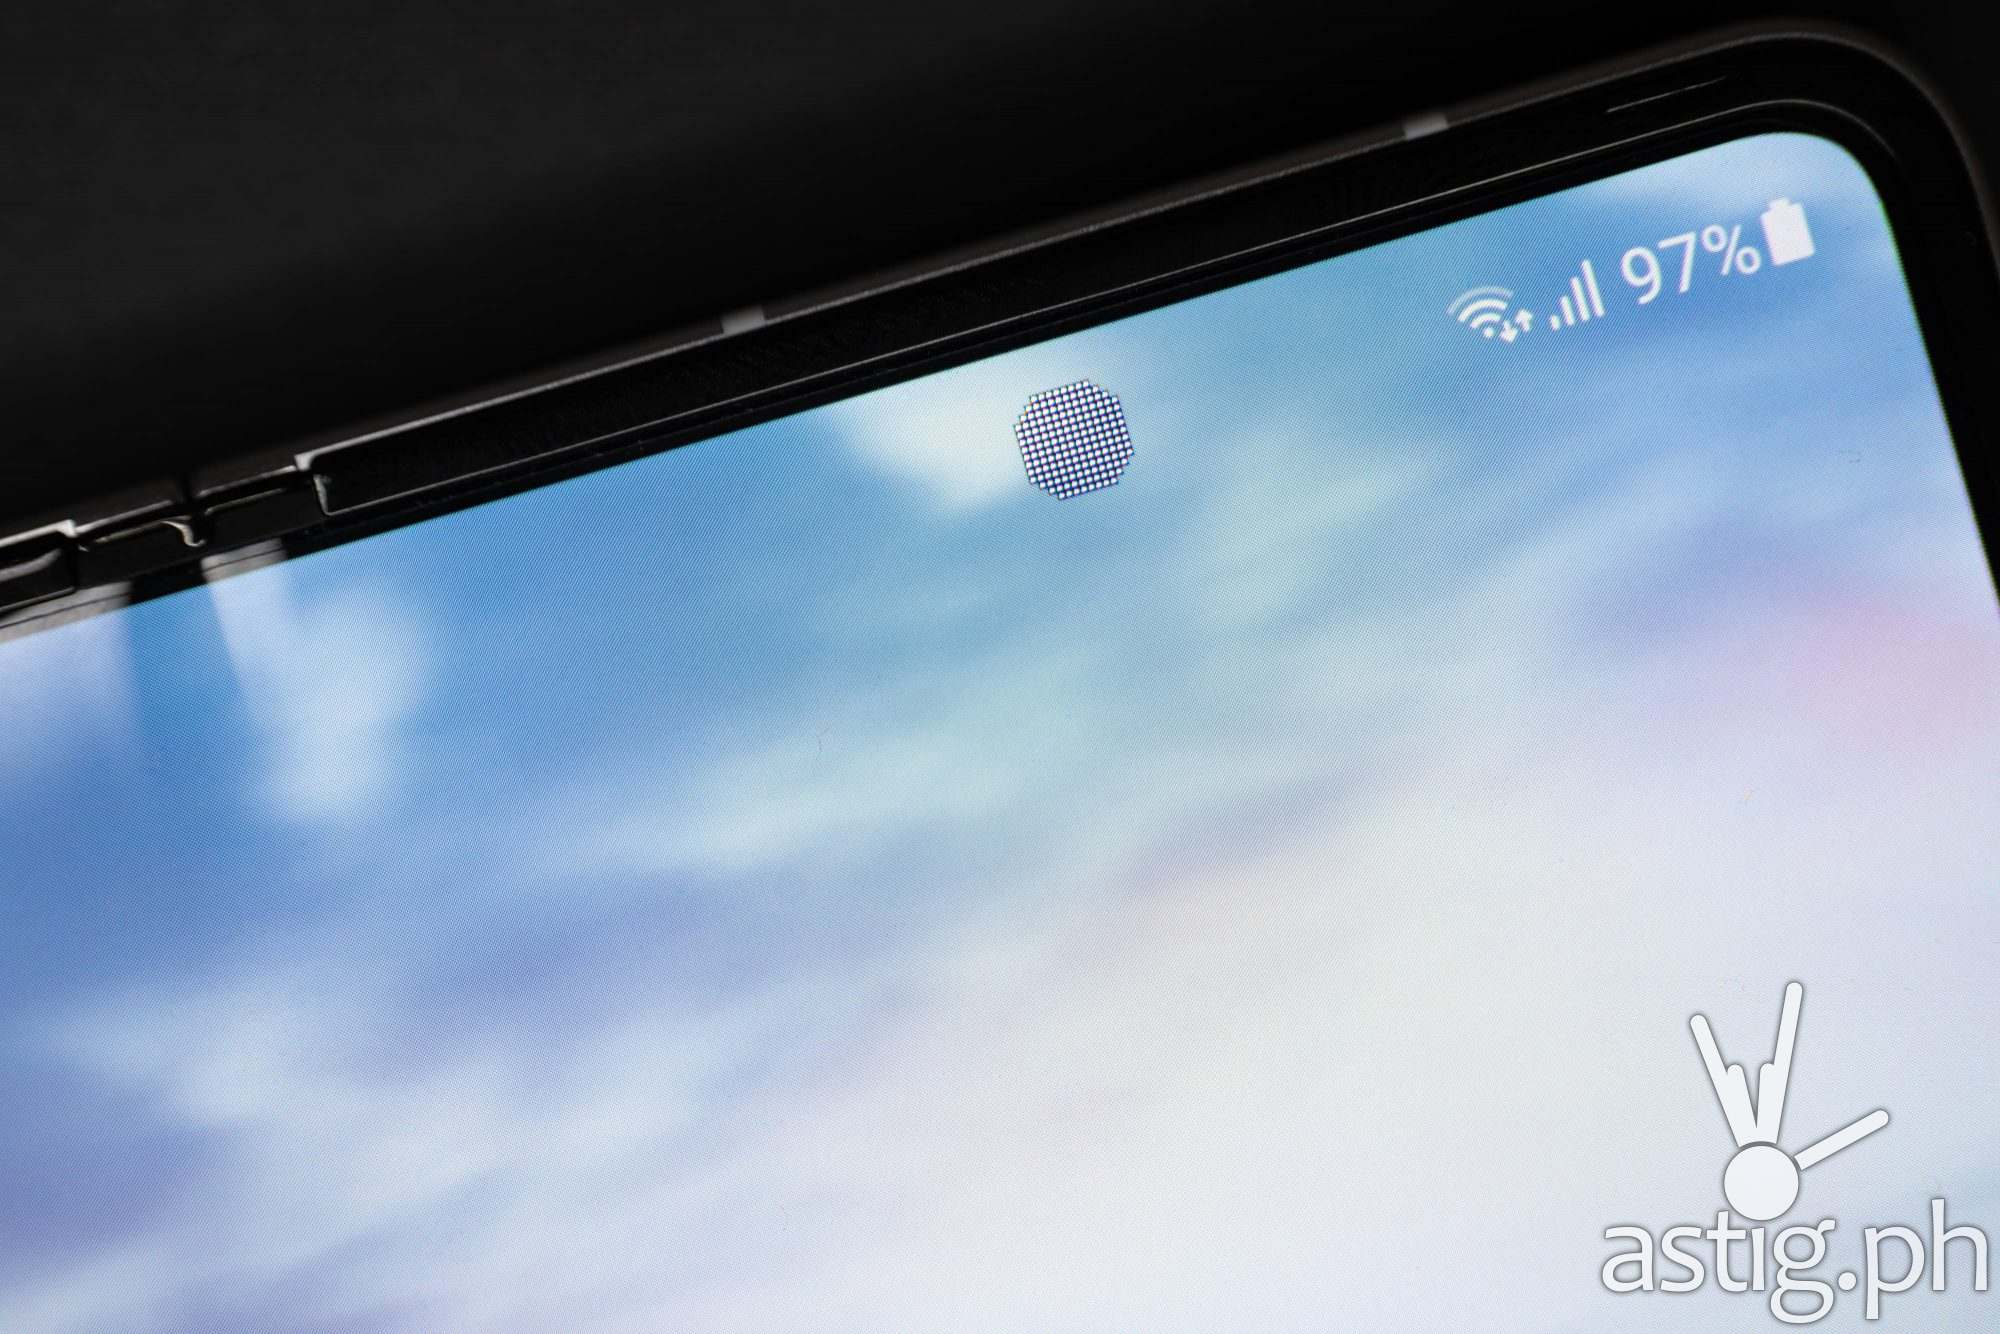 In-display selfie camera close-up - Samsung Galaxy Z Fold3 (Philippines)